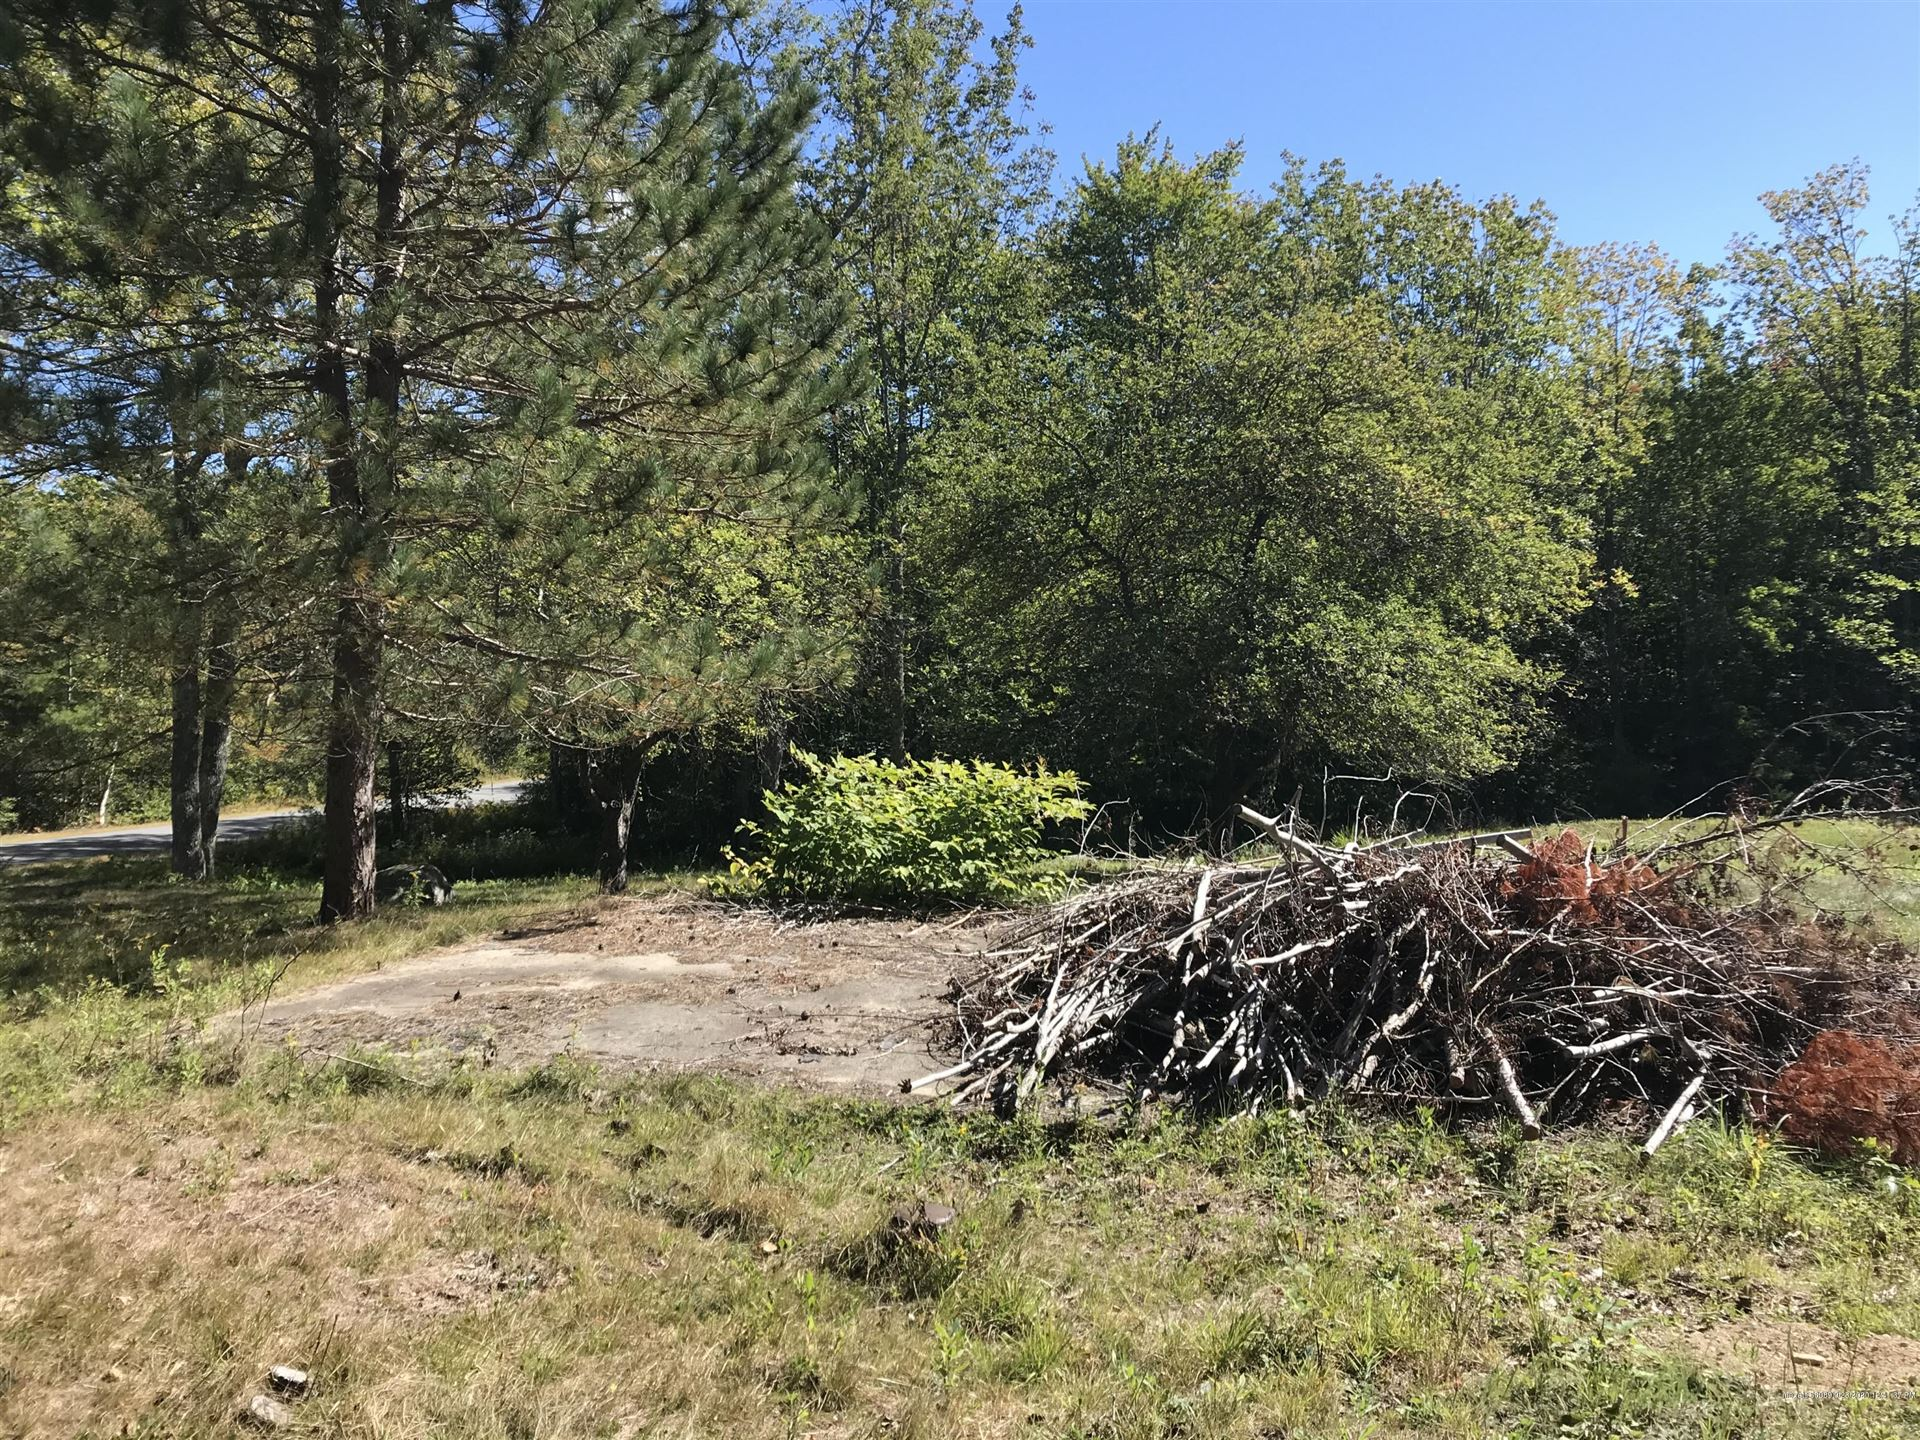 Photo of 258 Old County Road, Sedgwick, ME 04676 (MLS # 1469985)